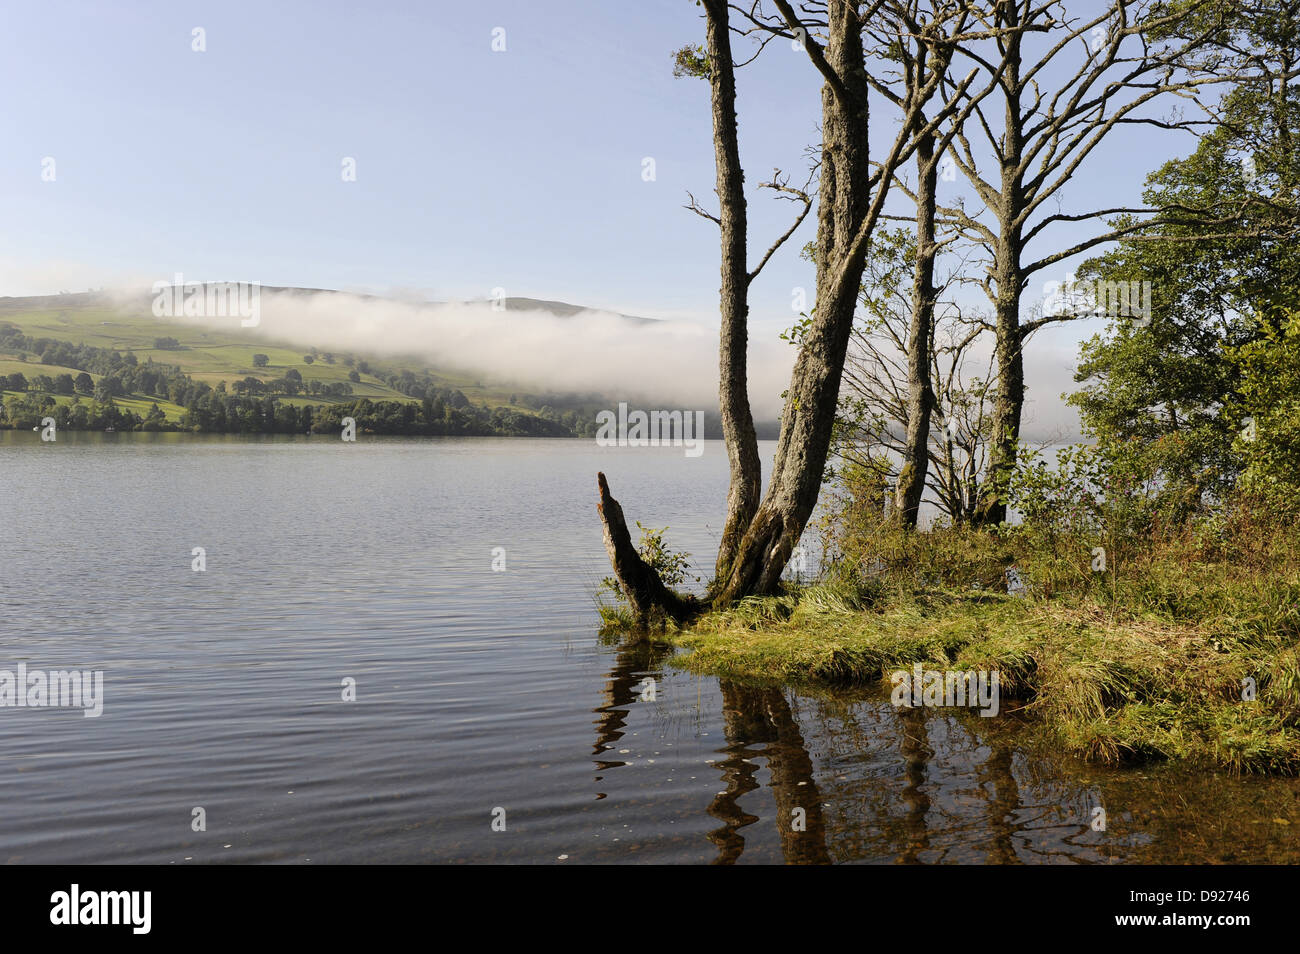 Loch Tay, Tayside, Scotland, Great Britain - Stock Image